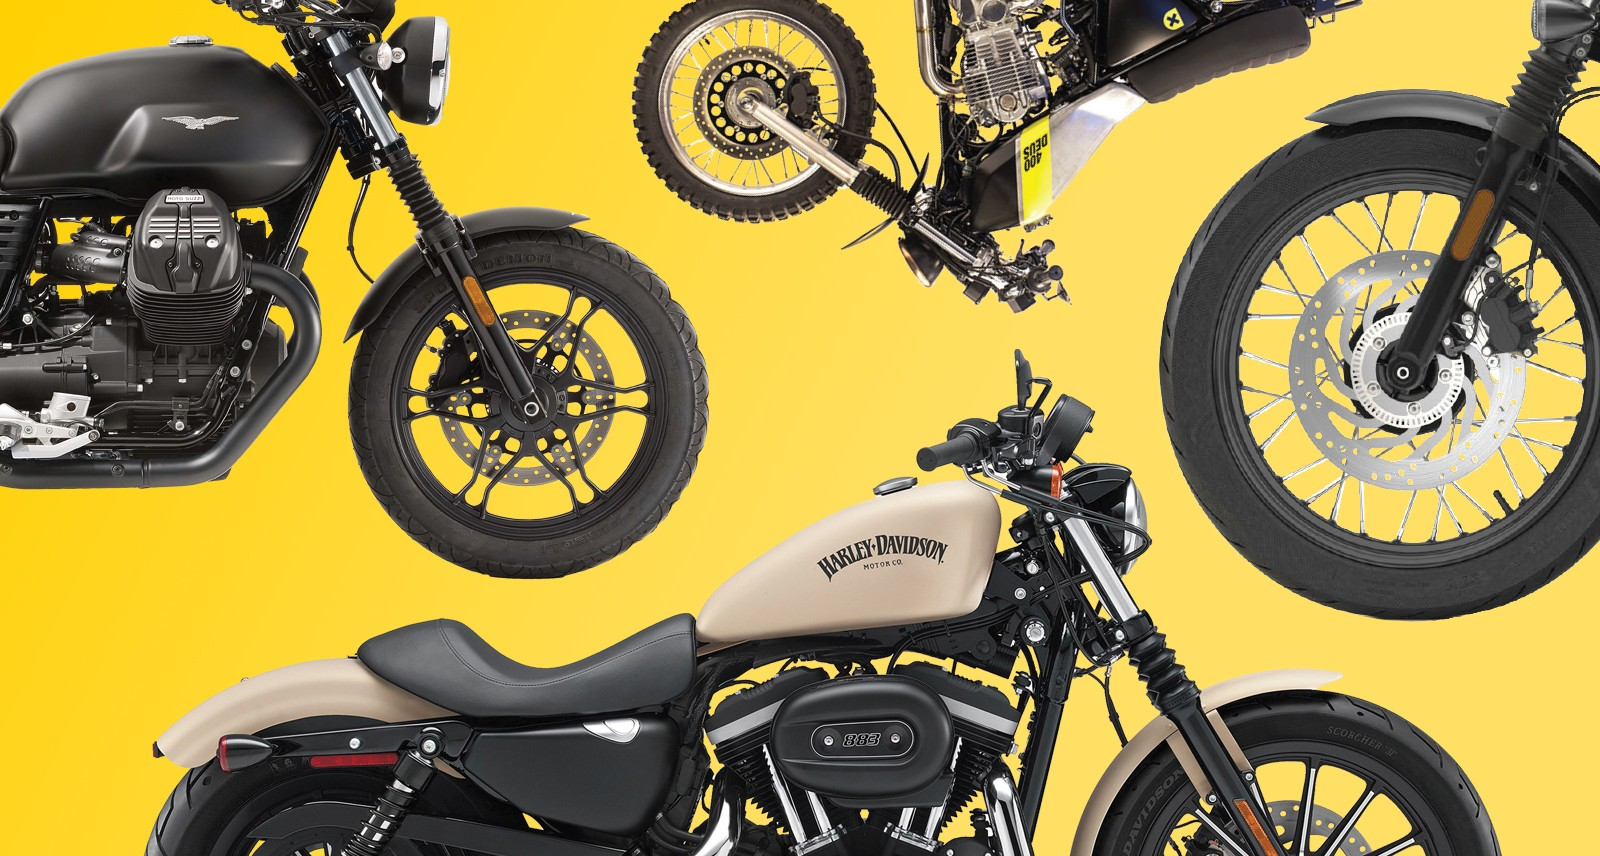 6 Motorcycles That'll Make You Want to Start Your Mid-Life Crisis Early